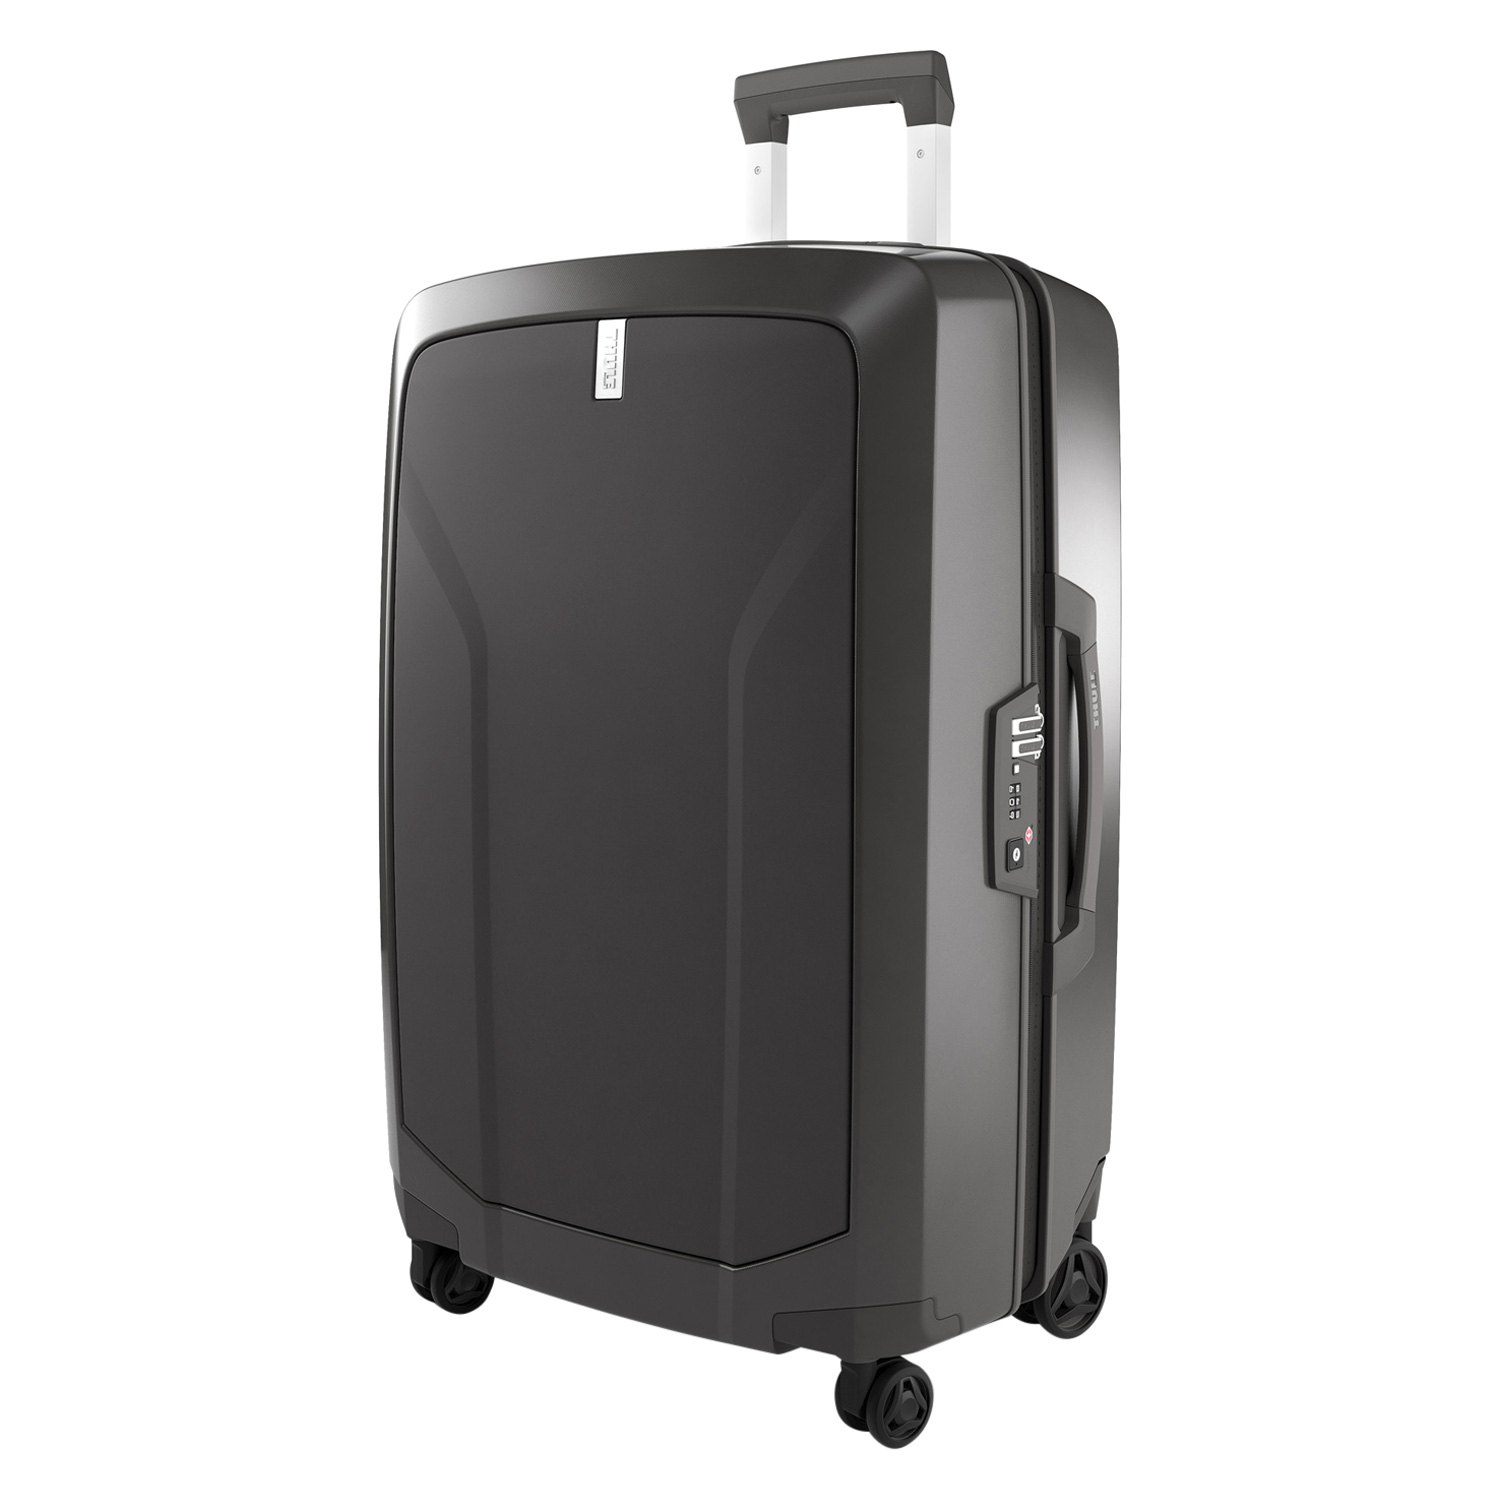 2733ea541e51 Thule® 3203942 - Revolve™ Raven Rolling Carry On Spinner Luggage